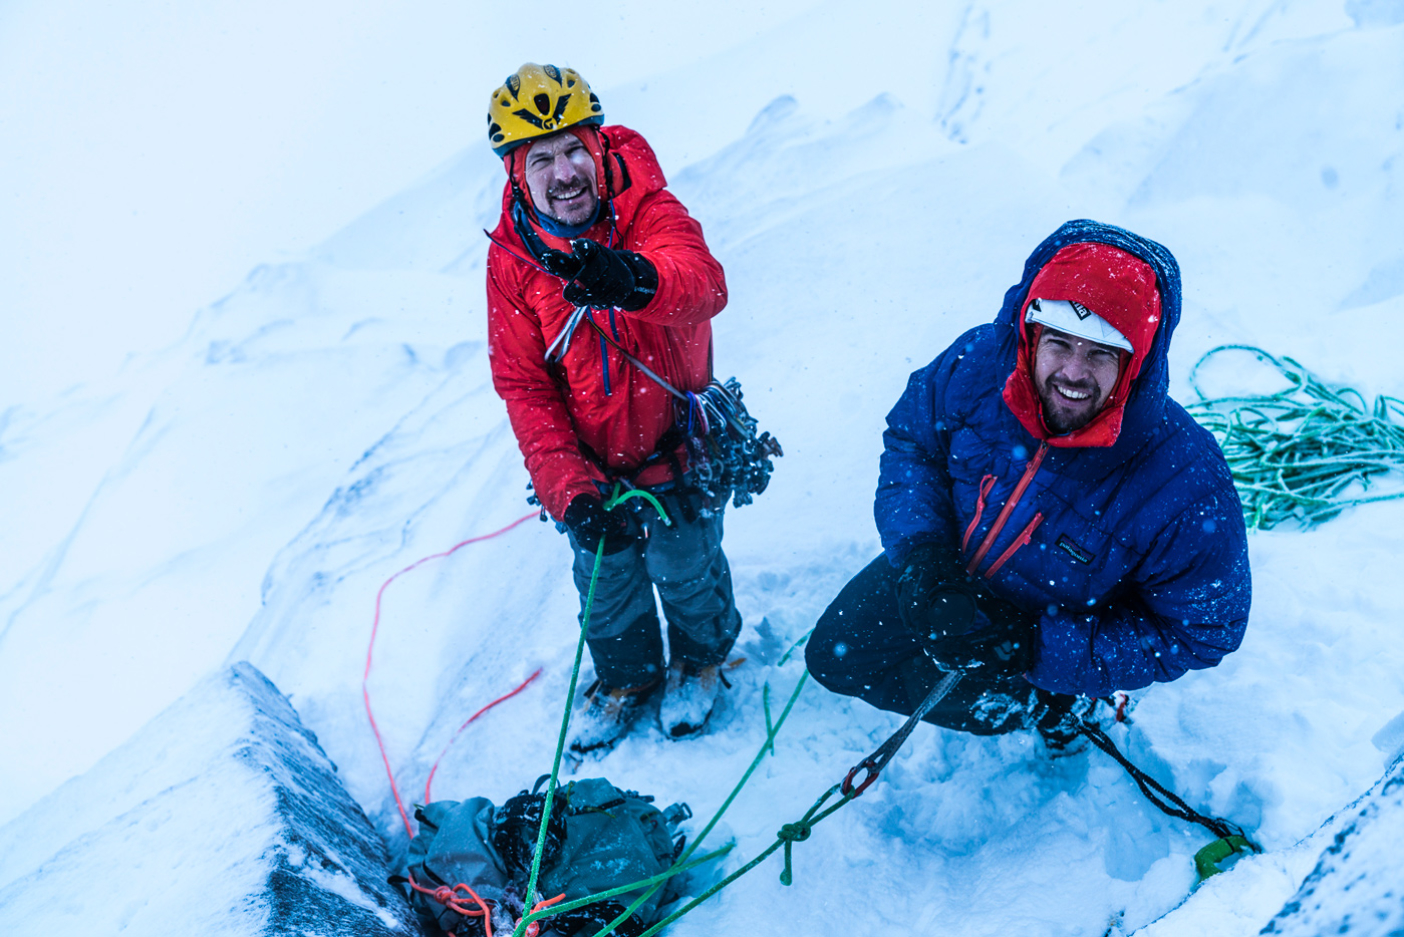 Steve House, Josh Wharton and Nick (not shown). Ben Nevis, Scotland. Photo: Mikey Schaefer